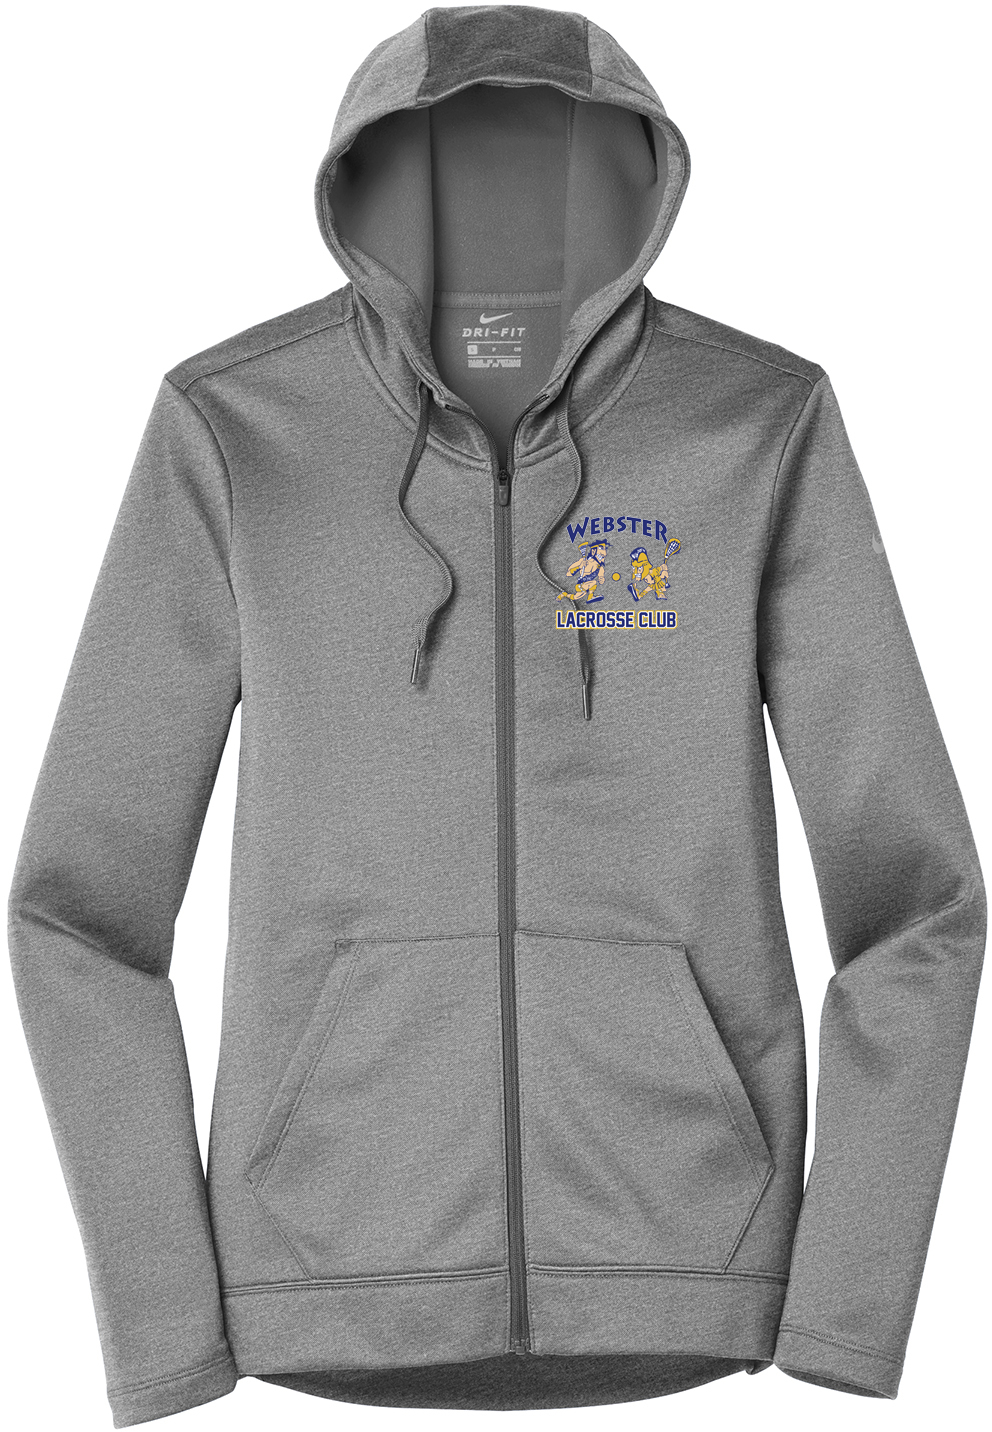 Webster Lacrosse Dark Grey Nike Ladies Therma-FIT Full Zip Hoodie